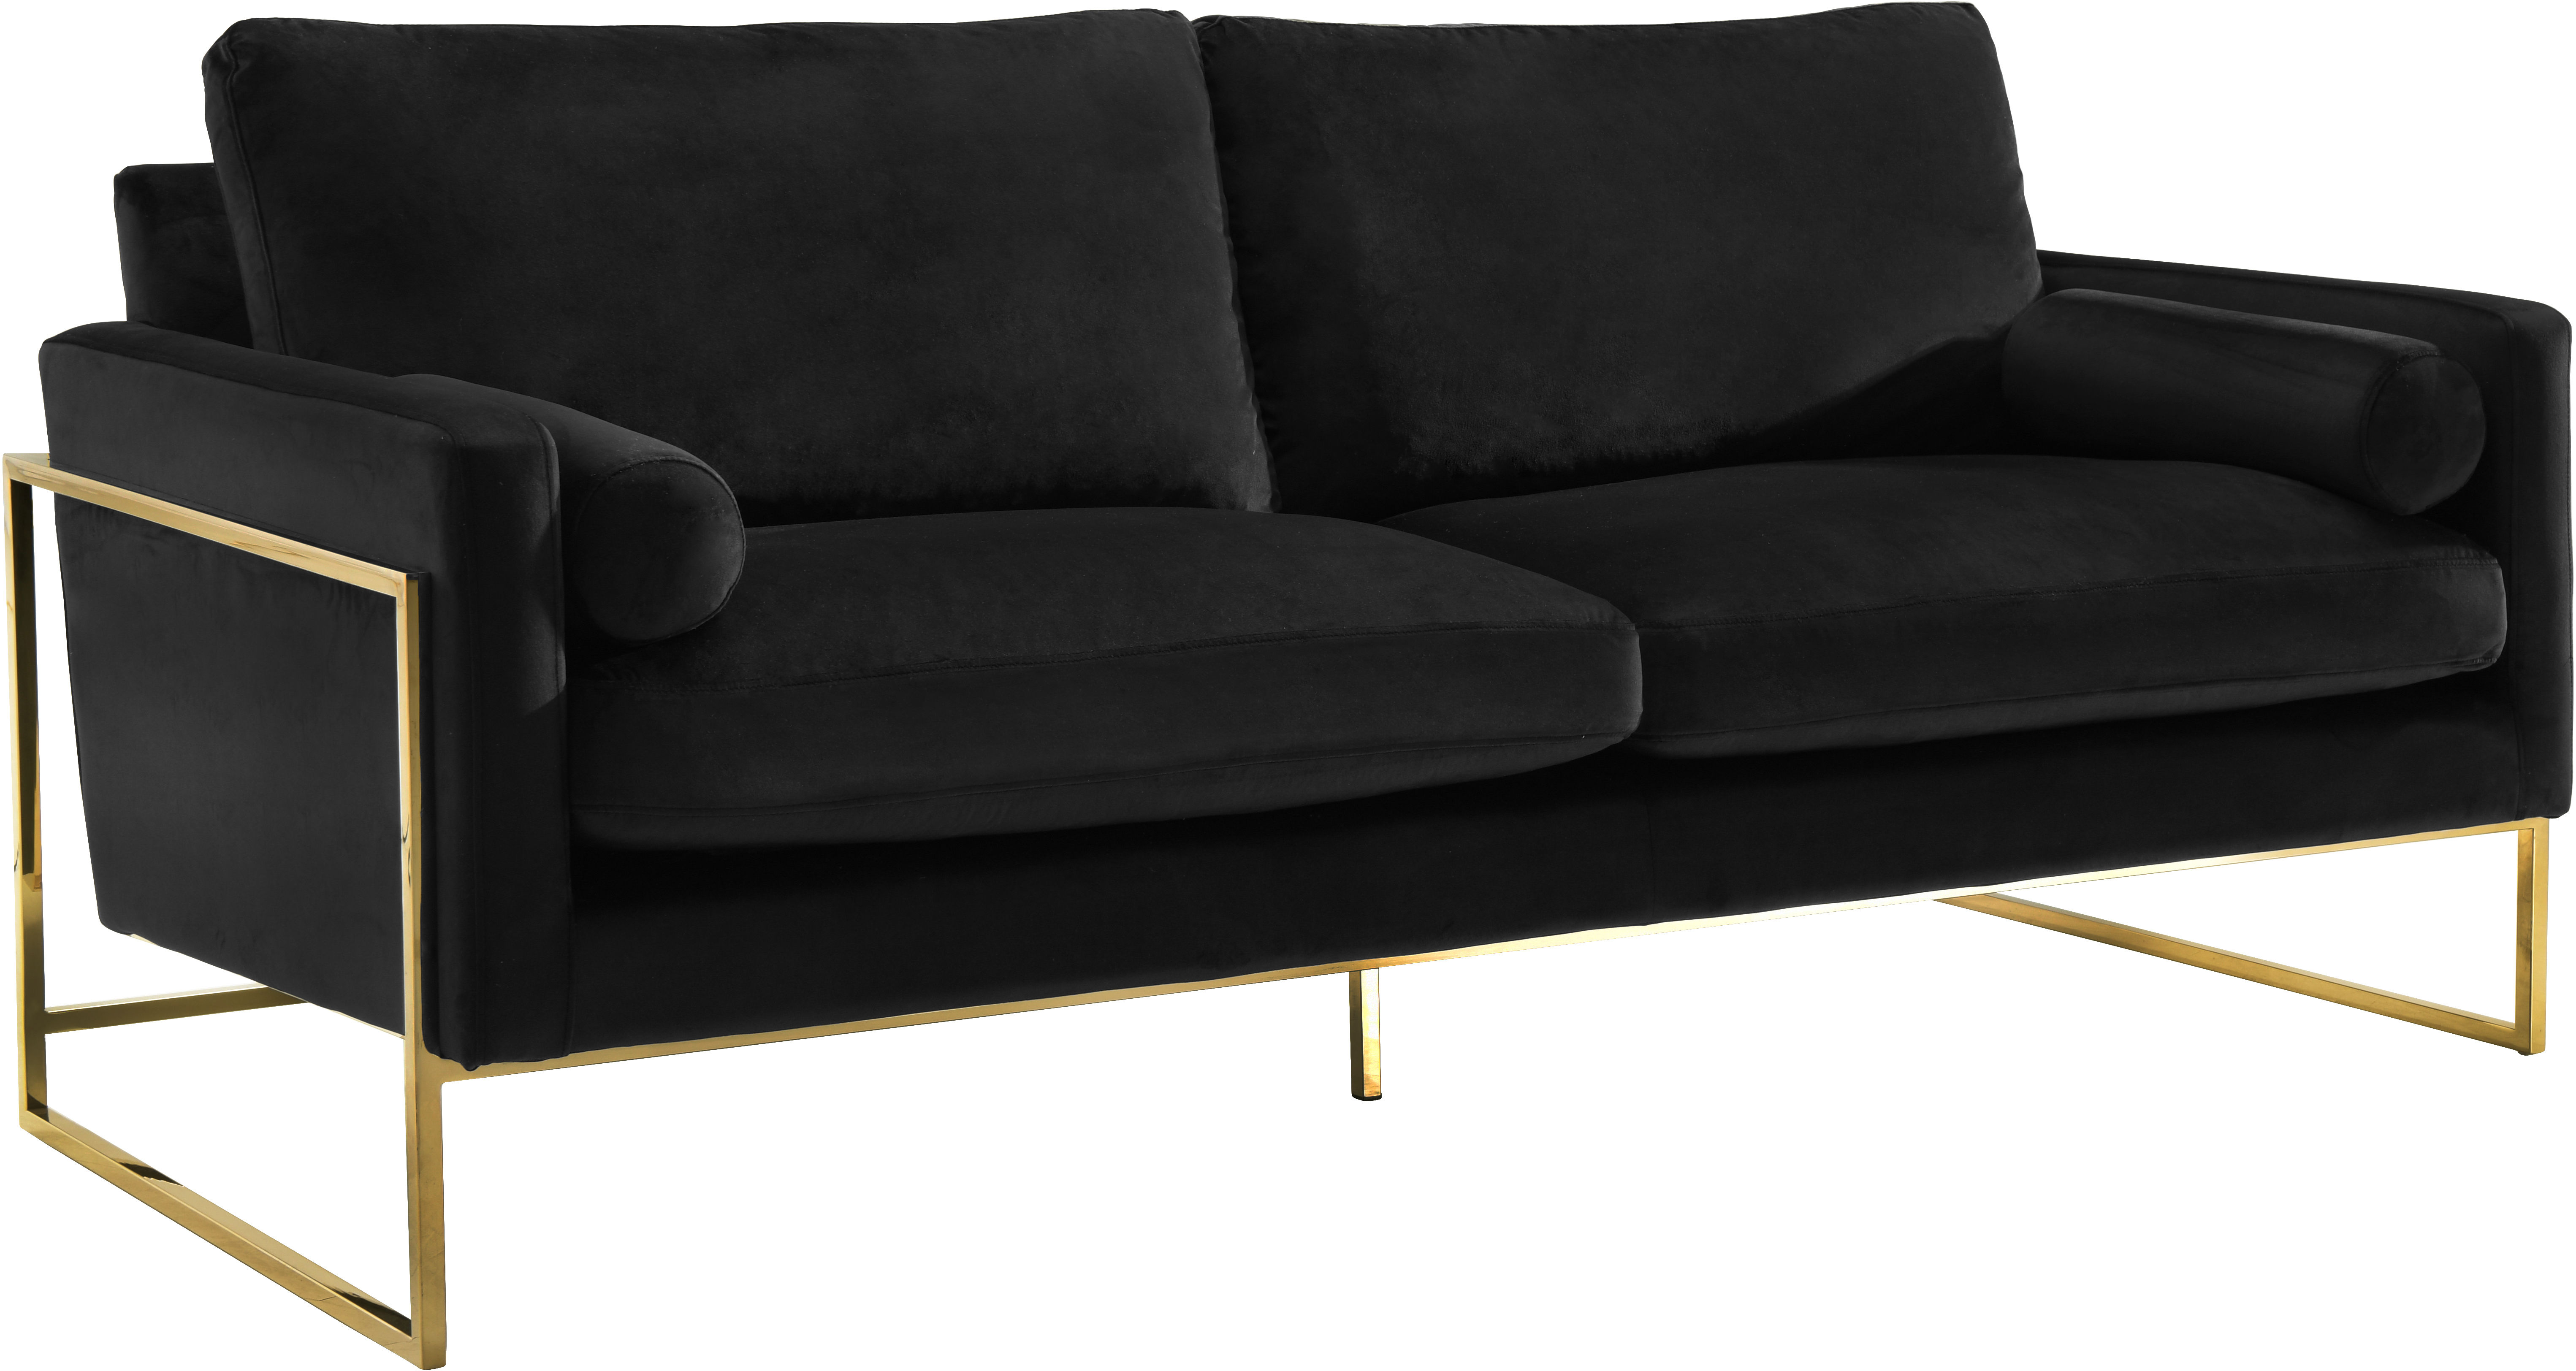 Meridian Furniture Mila Black Velvet Sofa | The Classy Home